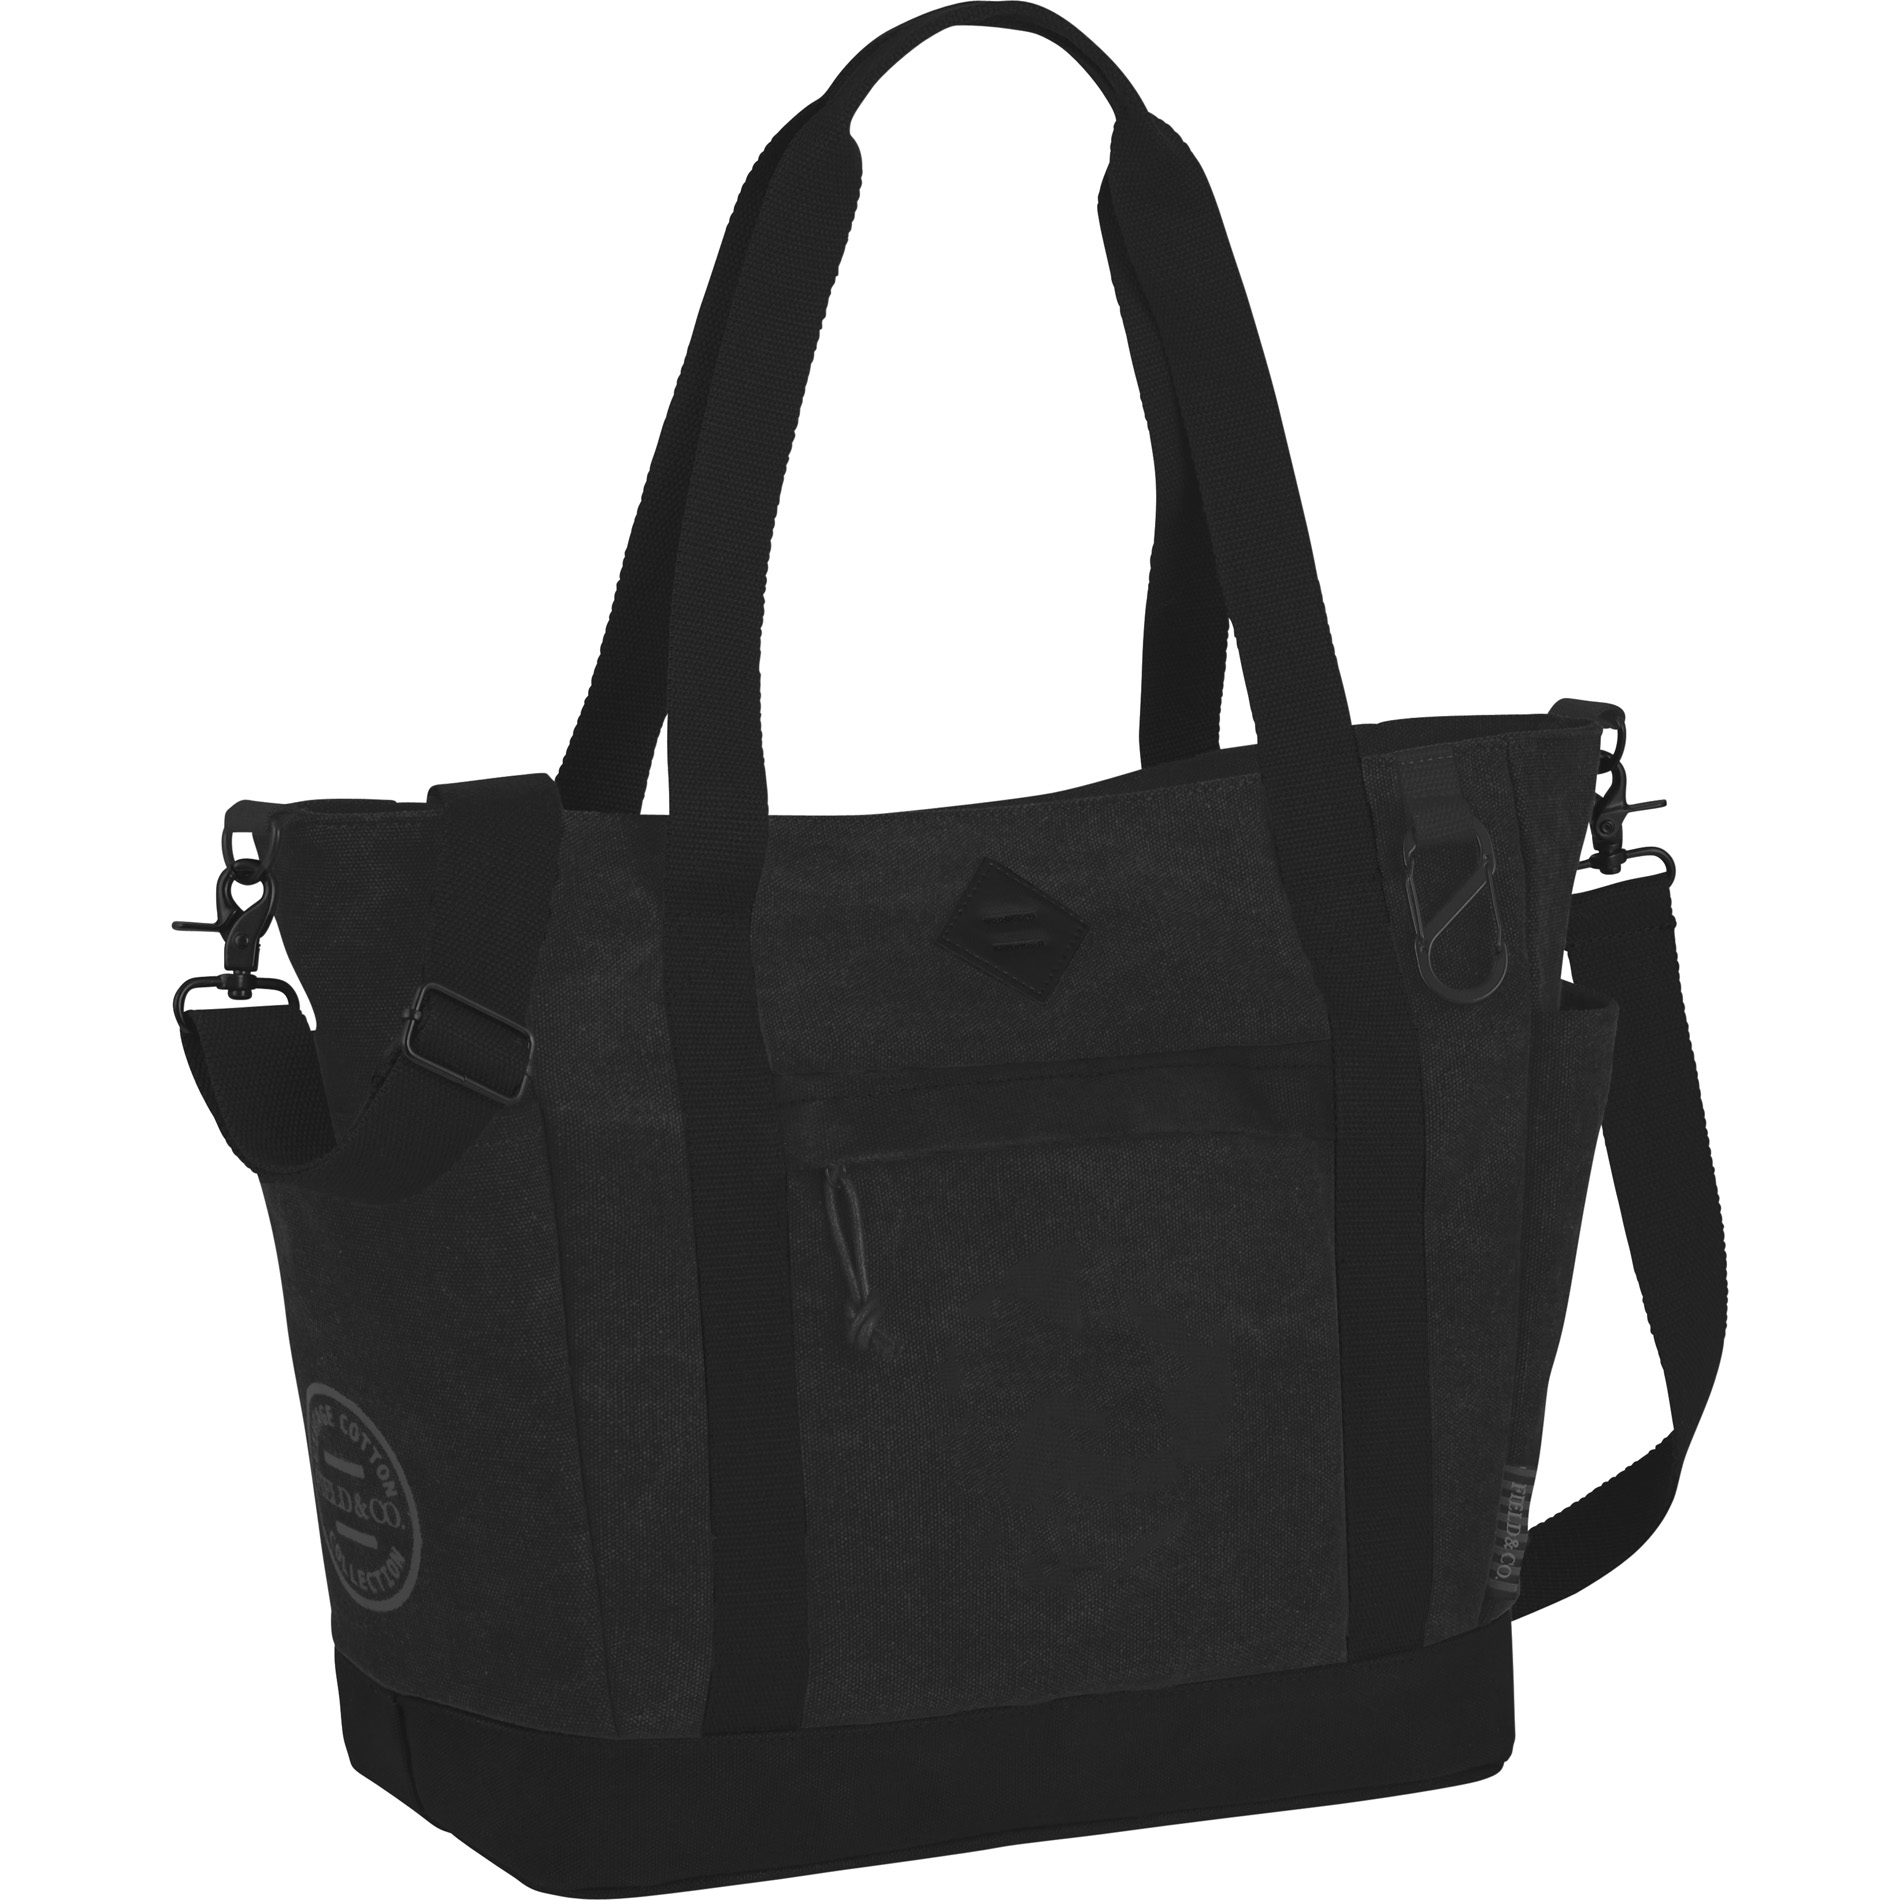 Field & Co. 7950-39 - Woodland Tote